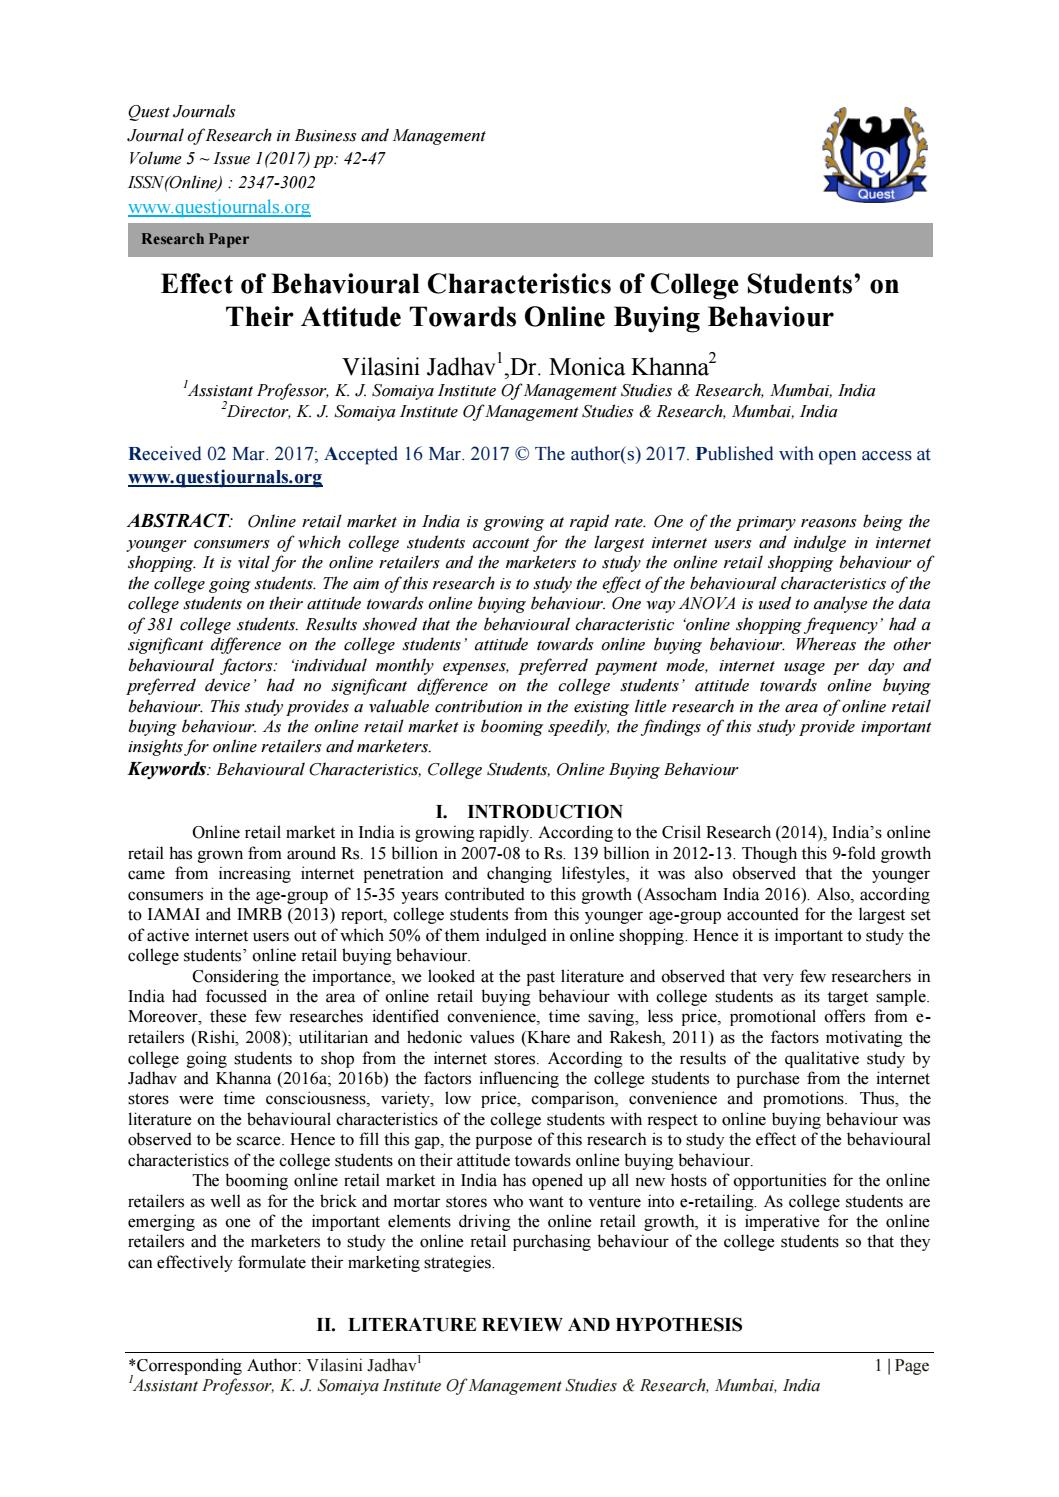 Effect of Behavioural Characteristics of College Students' on Their